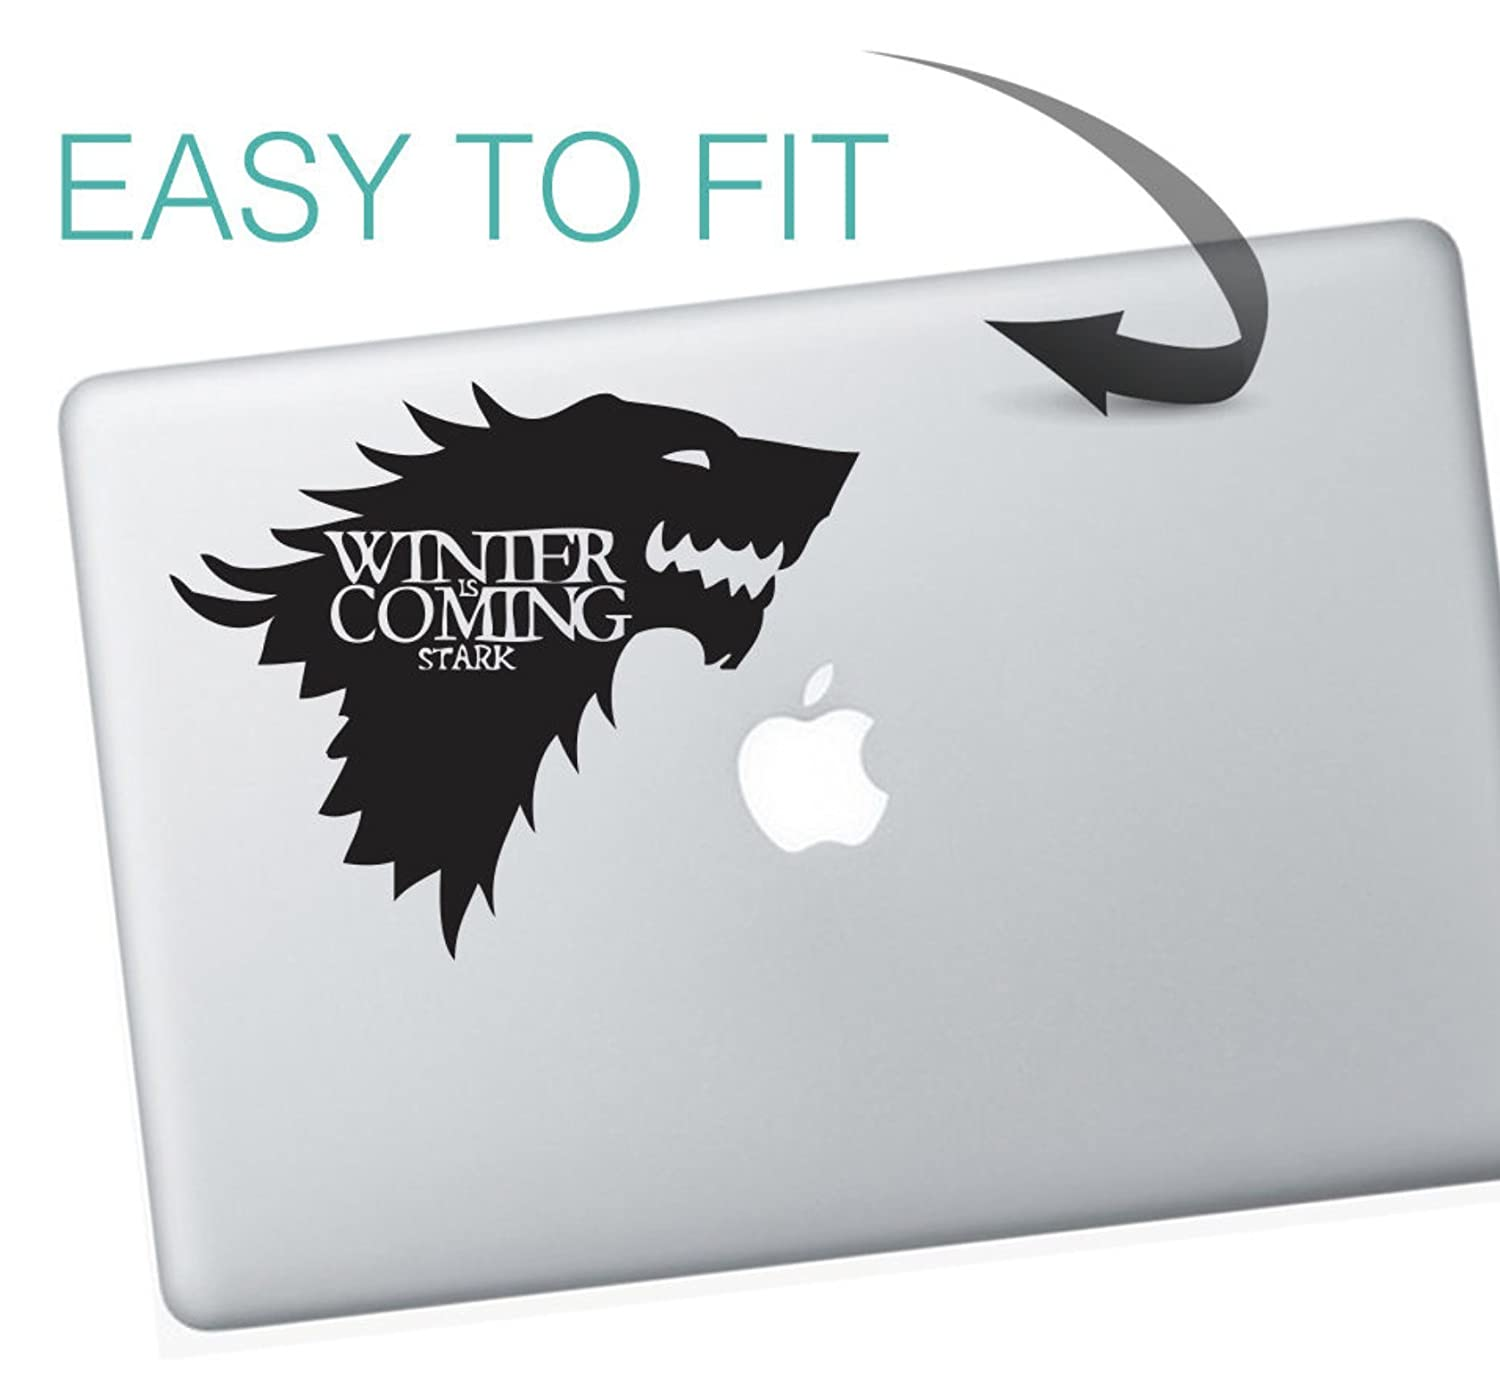 Game of thrones macbook sticker winter is coming house of stark by decorsfuk co amazon fr bricolage